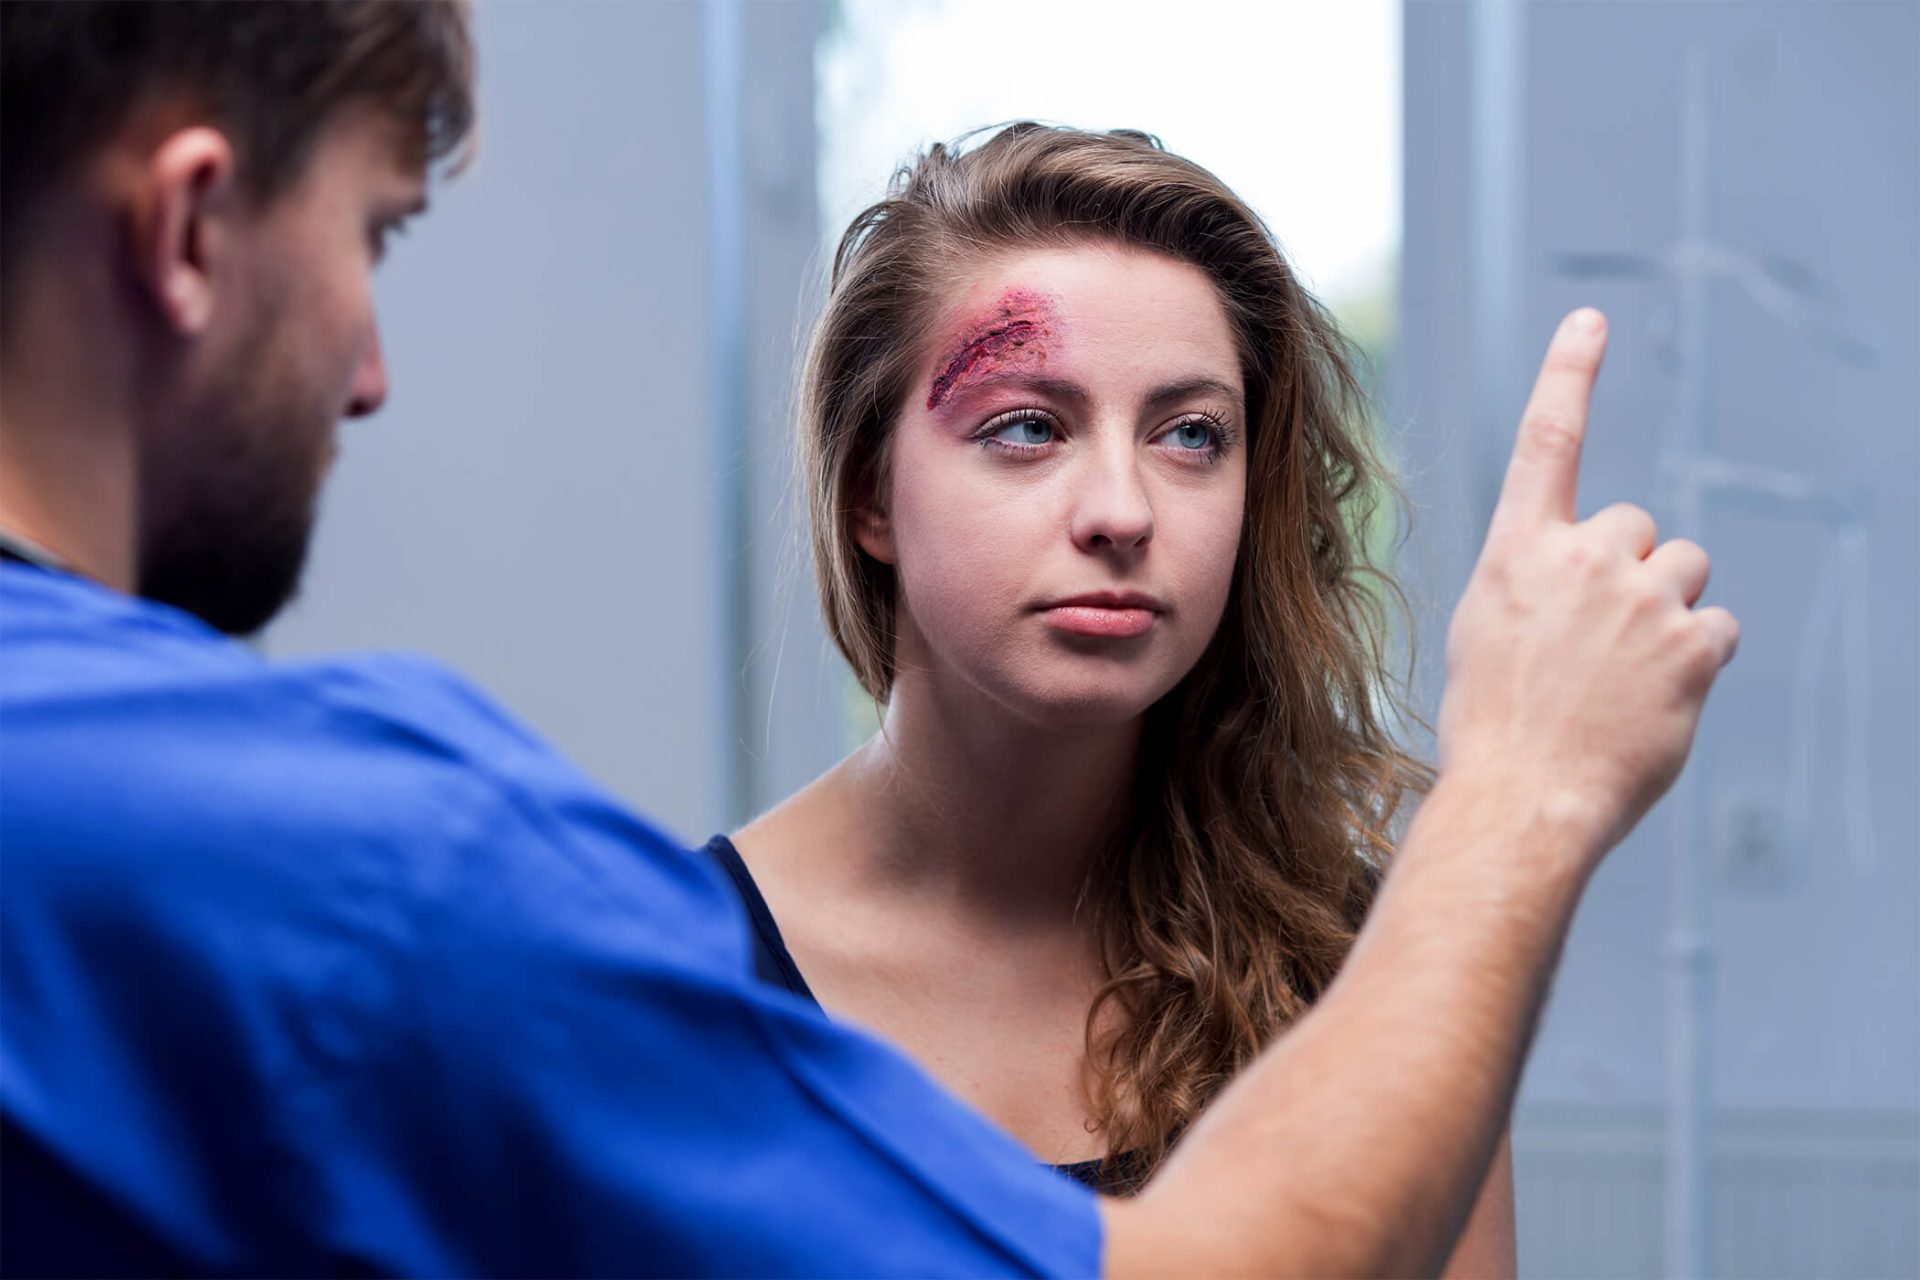 New York City Blunt Force Injury Accident Attorneys